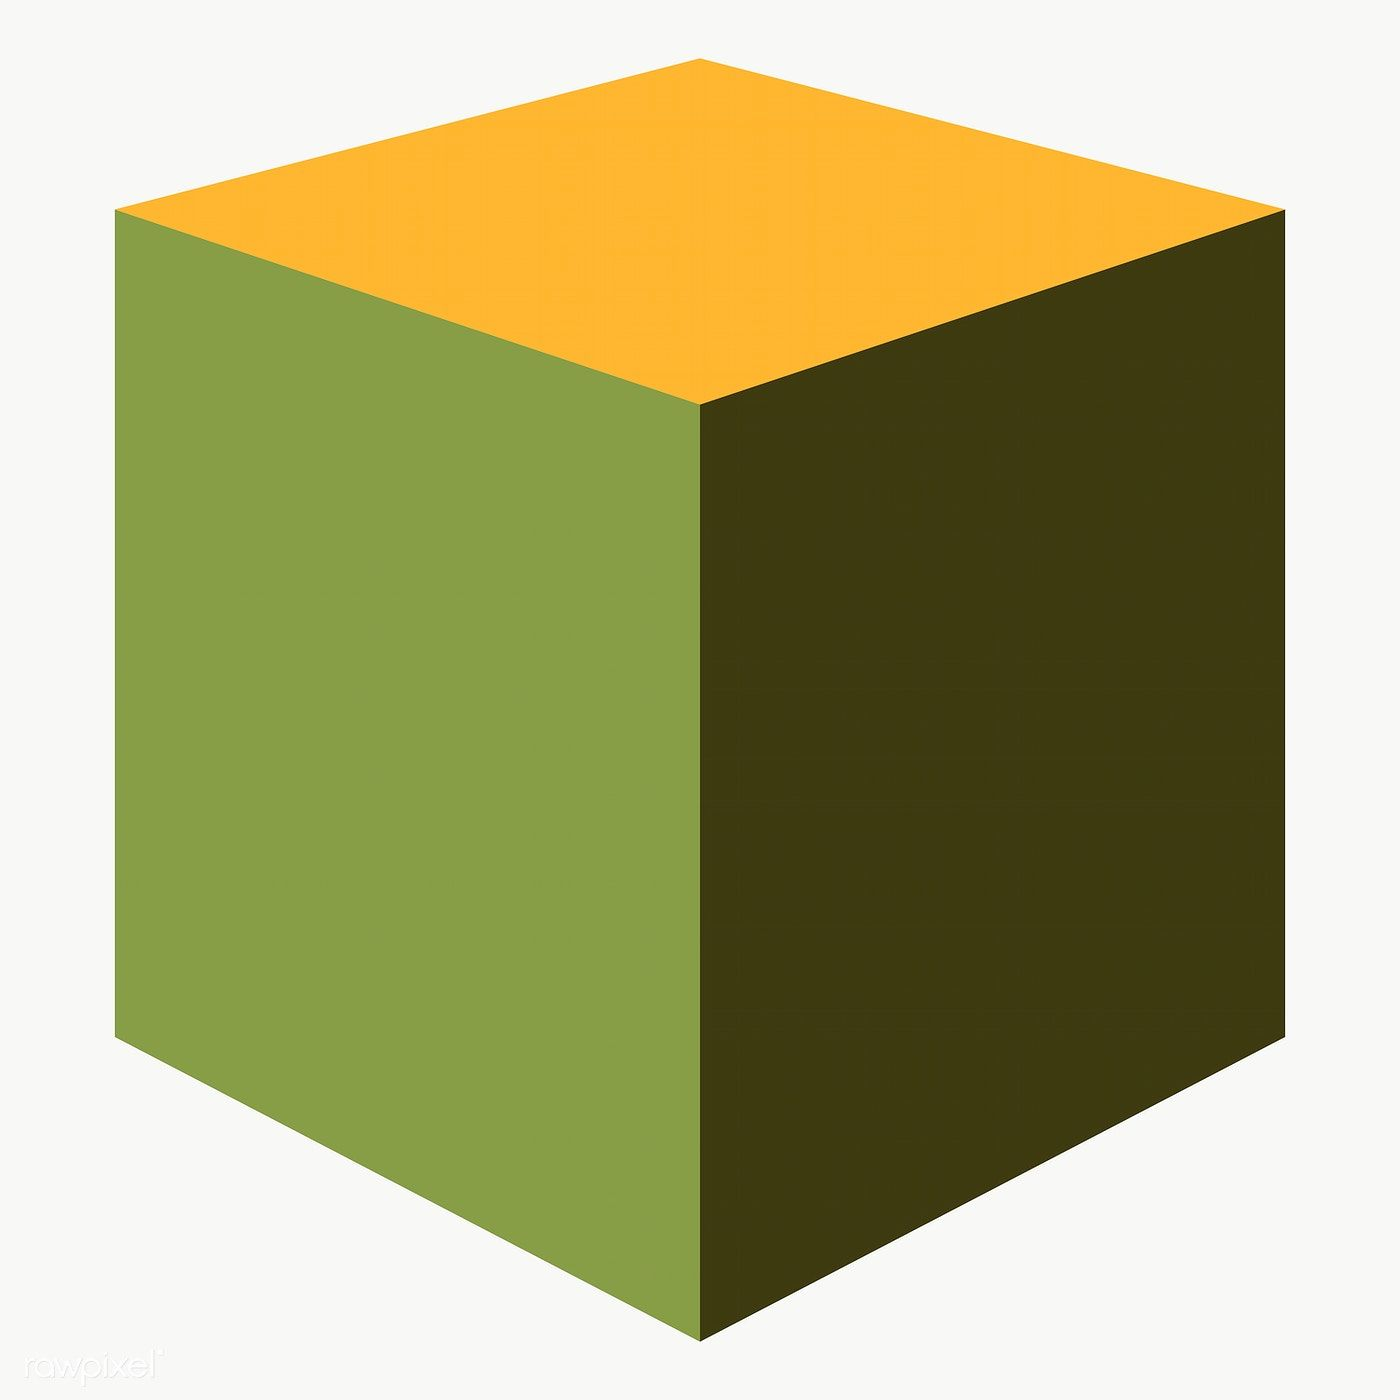 Retro Green Cube Geometrical Shape Transparent Png Free Image By Rawpixel Com Katie Web Design Resources Geometric Cube